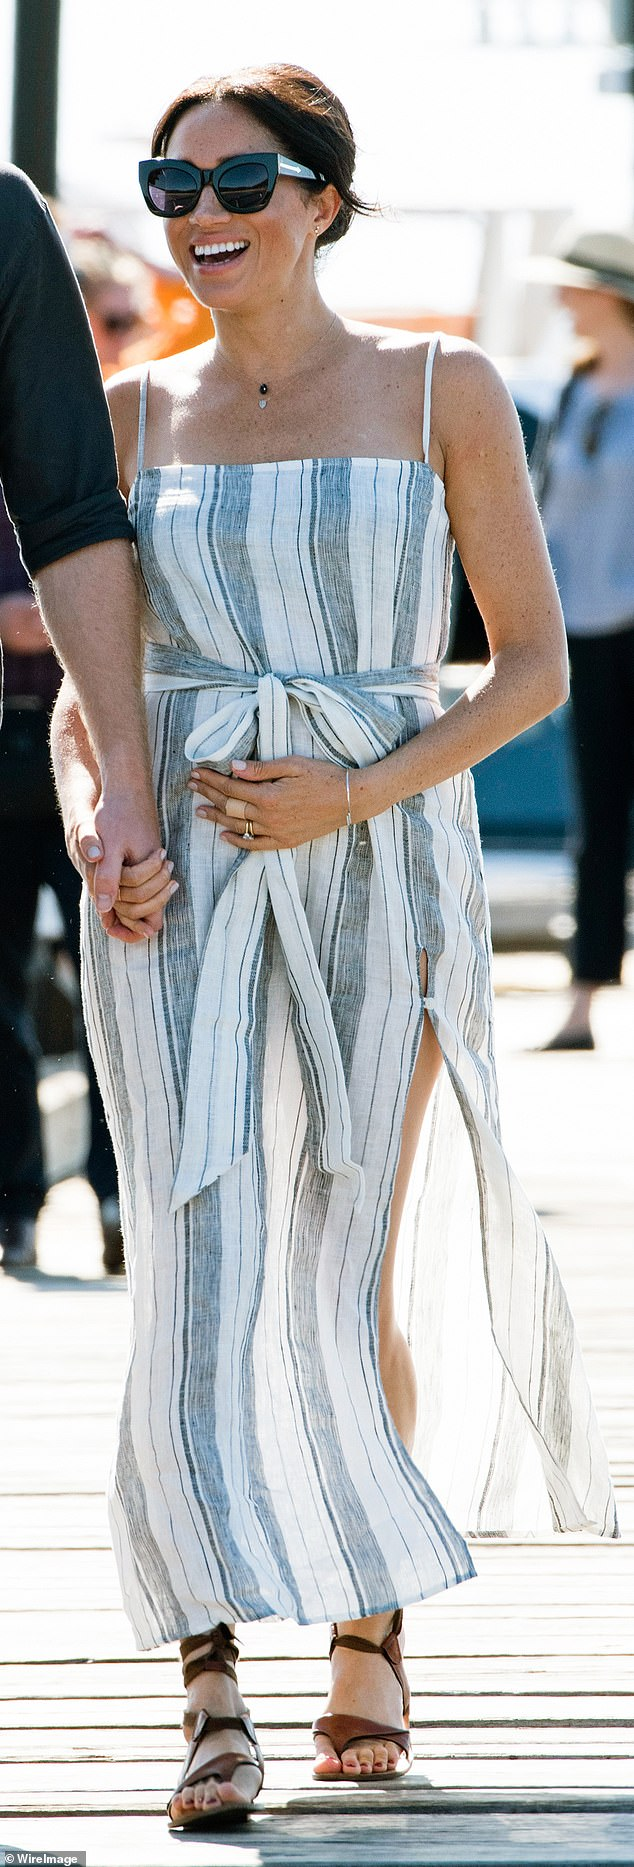 VERY FASHIONABLE FRIEND OF THE EARTH: Meghan's 2018 tour of Australia, New Zealand and Fiji was peppered with ethical fashion choices. Take her casual striped maxi dress for a stroll around Australia's Fraser Island. It cost £166 from U.S. brand Reformation, which prides itself on using sustainable materials rescued from unsold fabrics and repurposed vintage clothing. Then, in New Zealand, Meghan went for a custom dress from a native designer with oodles of ethical credentials thrown in. She wowed fans in her white tuxedo dress from Kiwi brand Maggie Marilyn, which uses organic cottons, ethically produced silks and recycled metals that are not harmful to the environment.